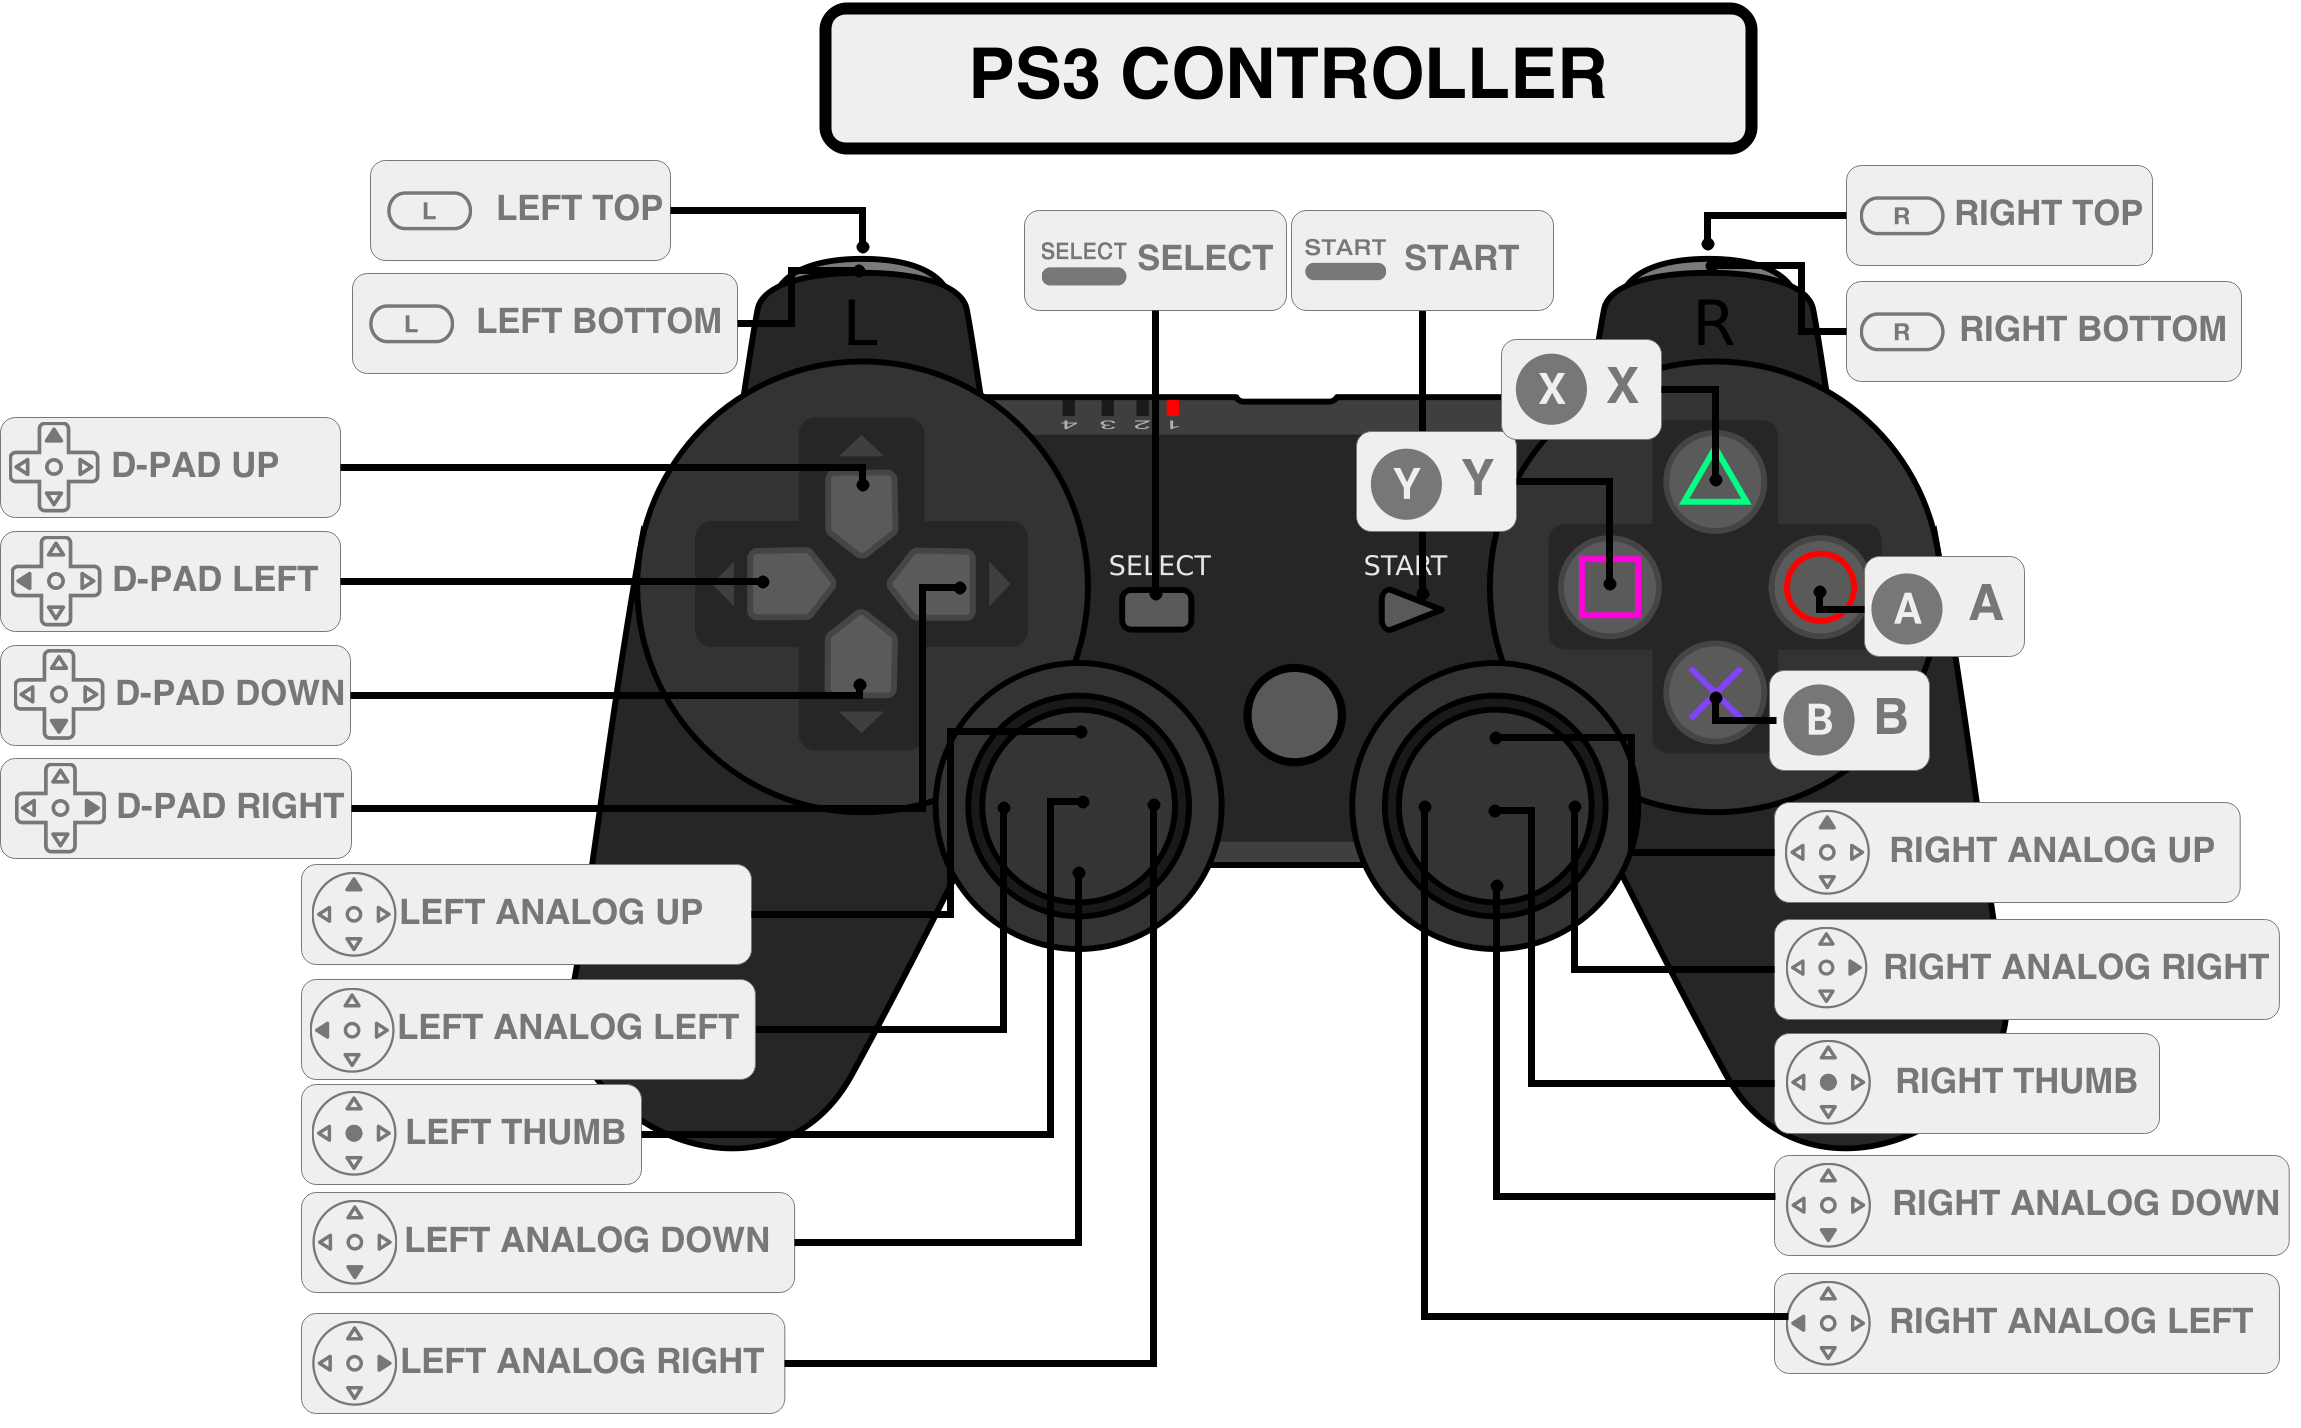 RetroArch Configuration HerbFargus edited this page on Feb 4 · 42